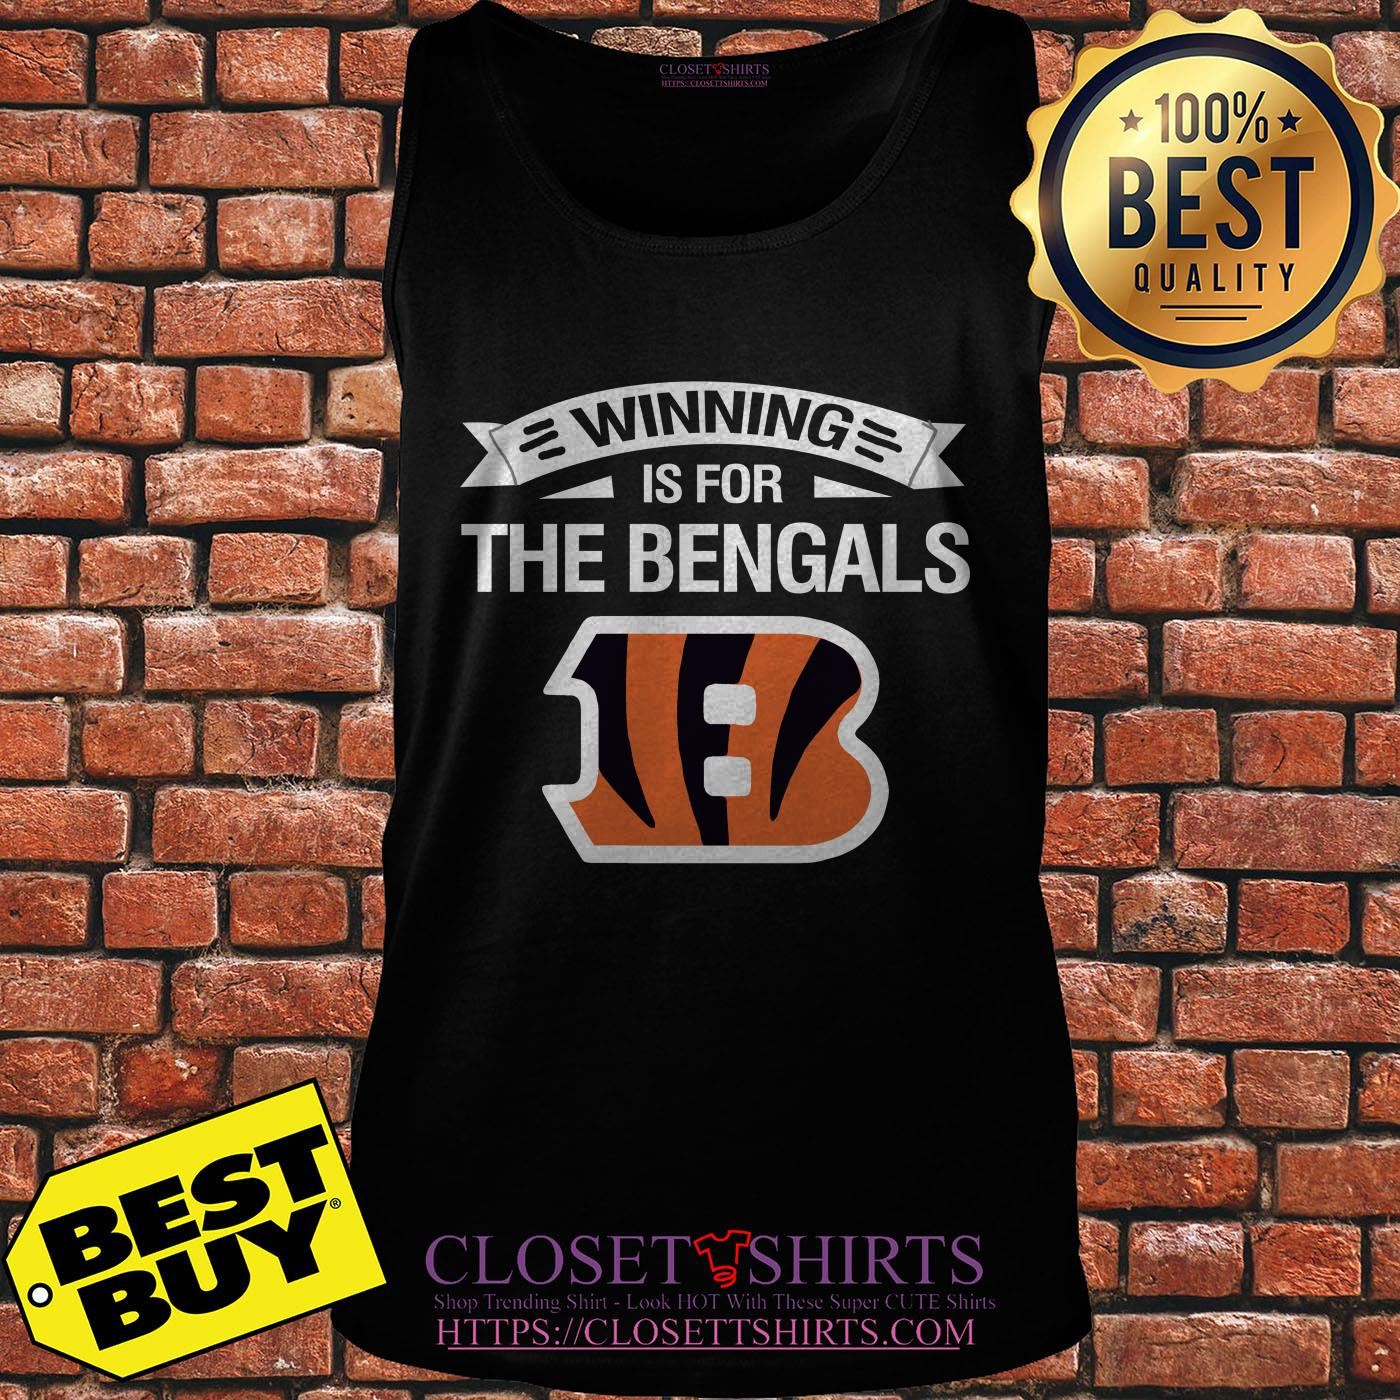 size 40 45bc1 fc61b Cincinnati Winning is for The Bengals shirt, ladies tee ...